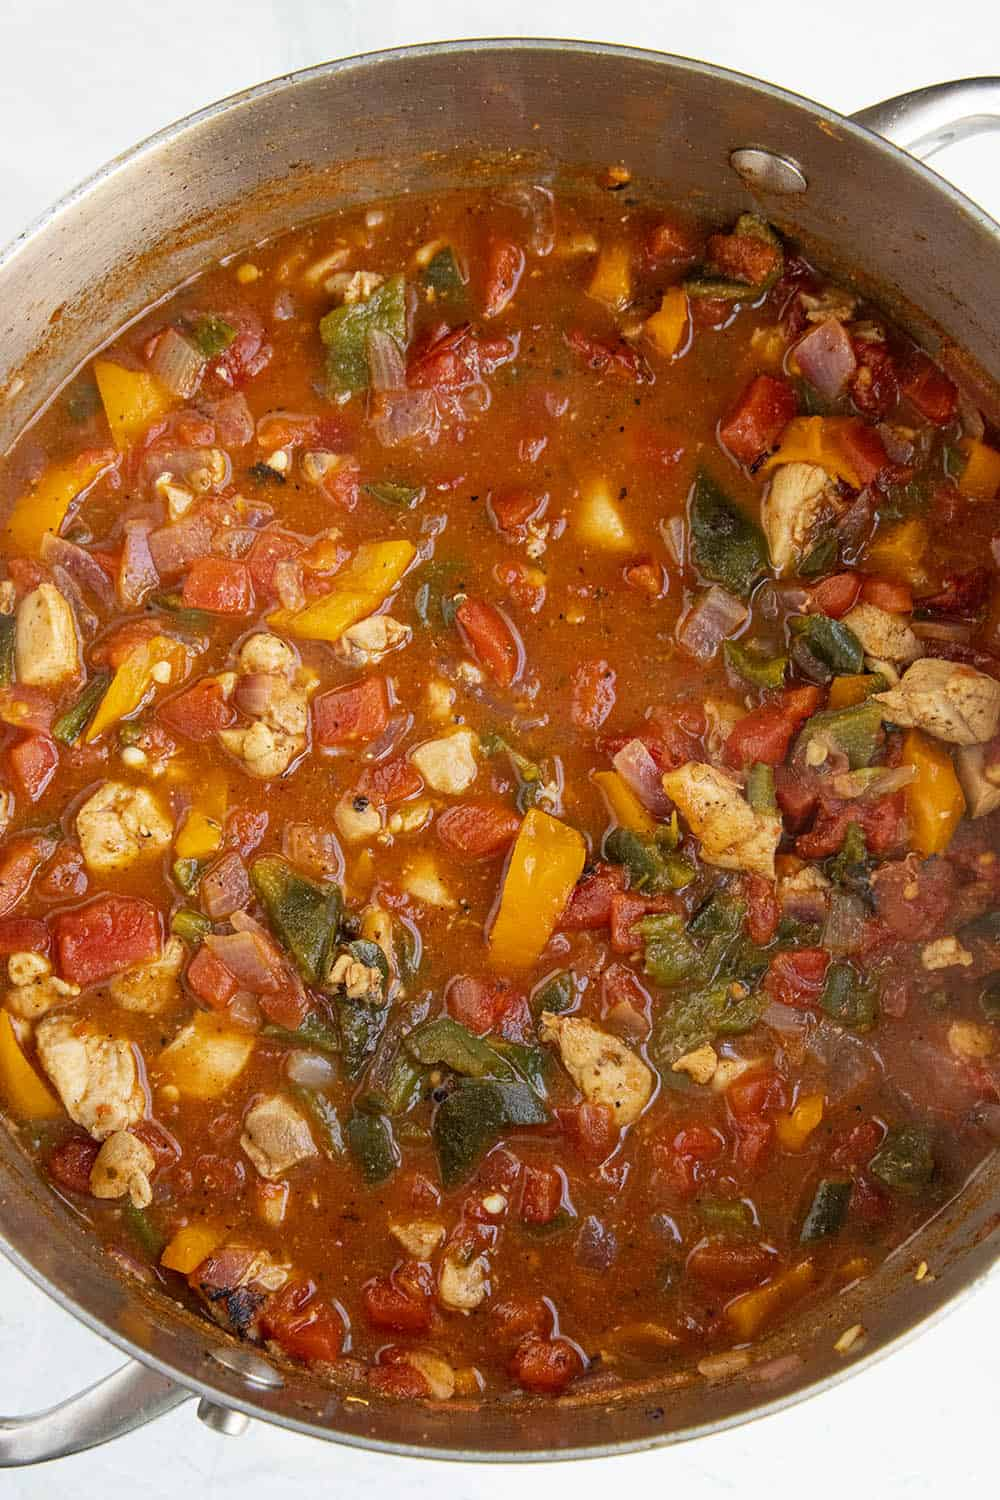 Cooking down the vegetables, chicken and fire roasted tomatoes in a pot